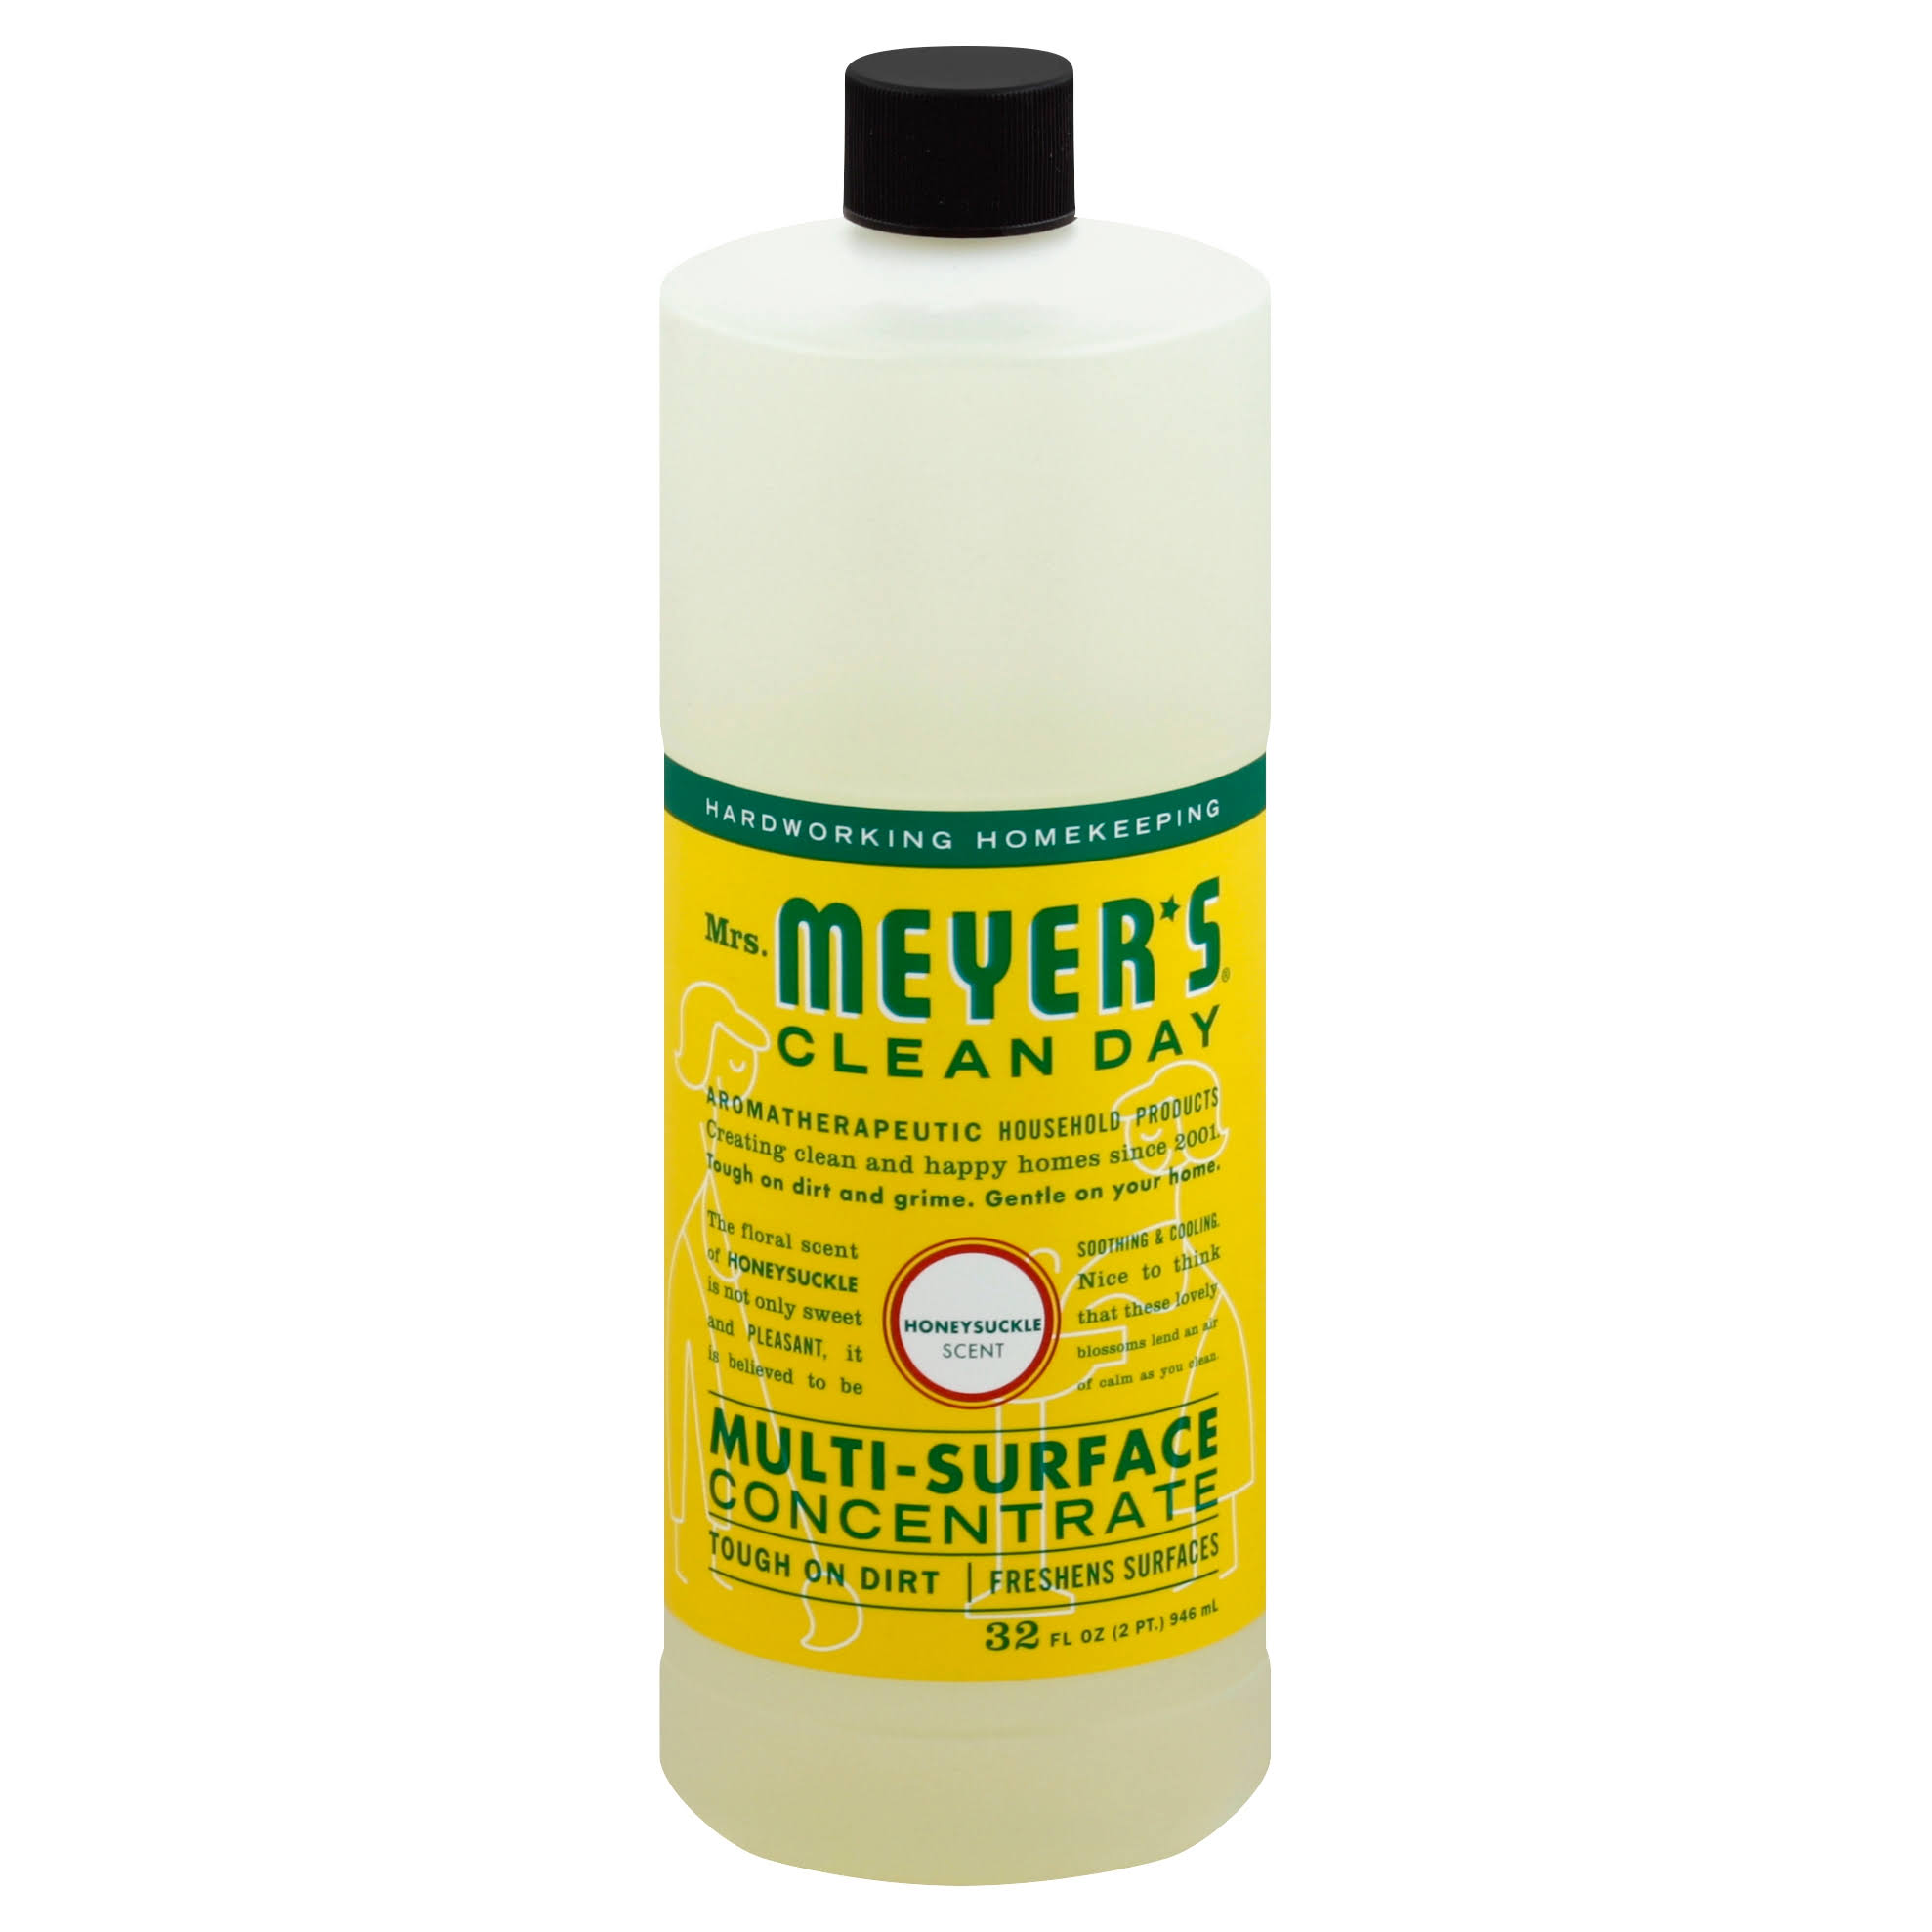 Mrs. Meyer's Clean Day All Purpose Cleaner - Honeysuckle, 32oz